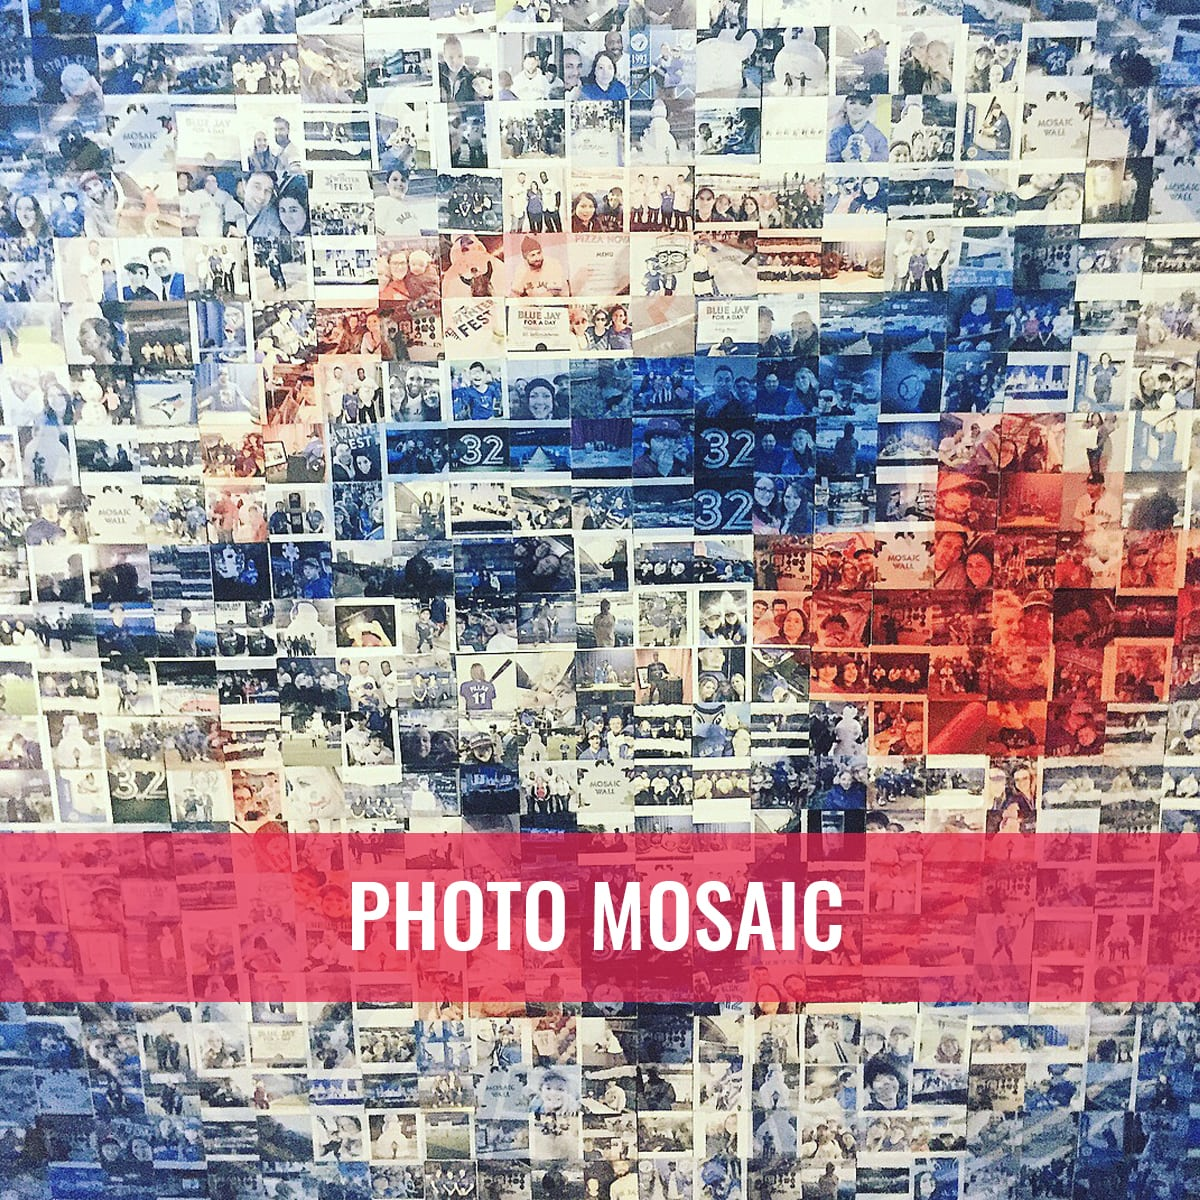 Photo Booth Rental Services blue jays photo mosaic interactive photo booth event toronto